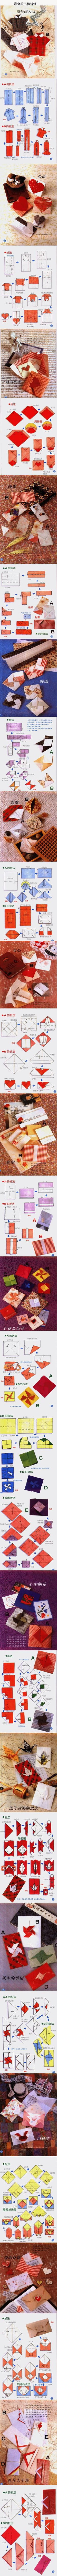 A very complete correspondence folding method